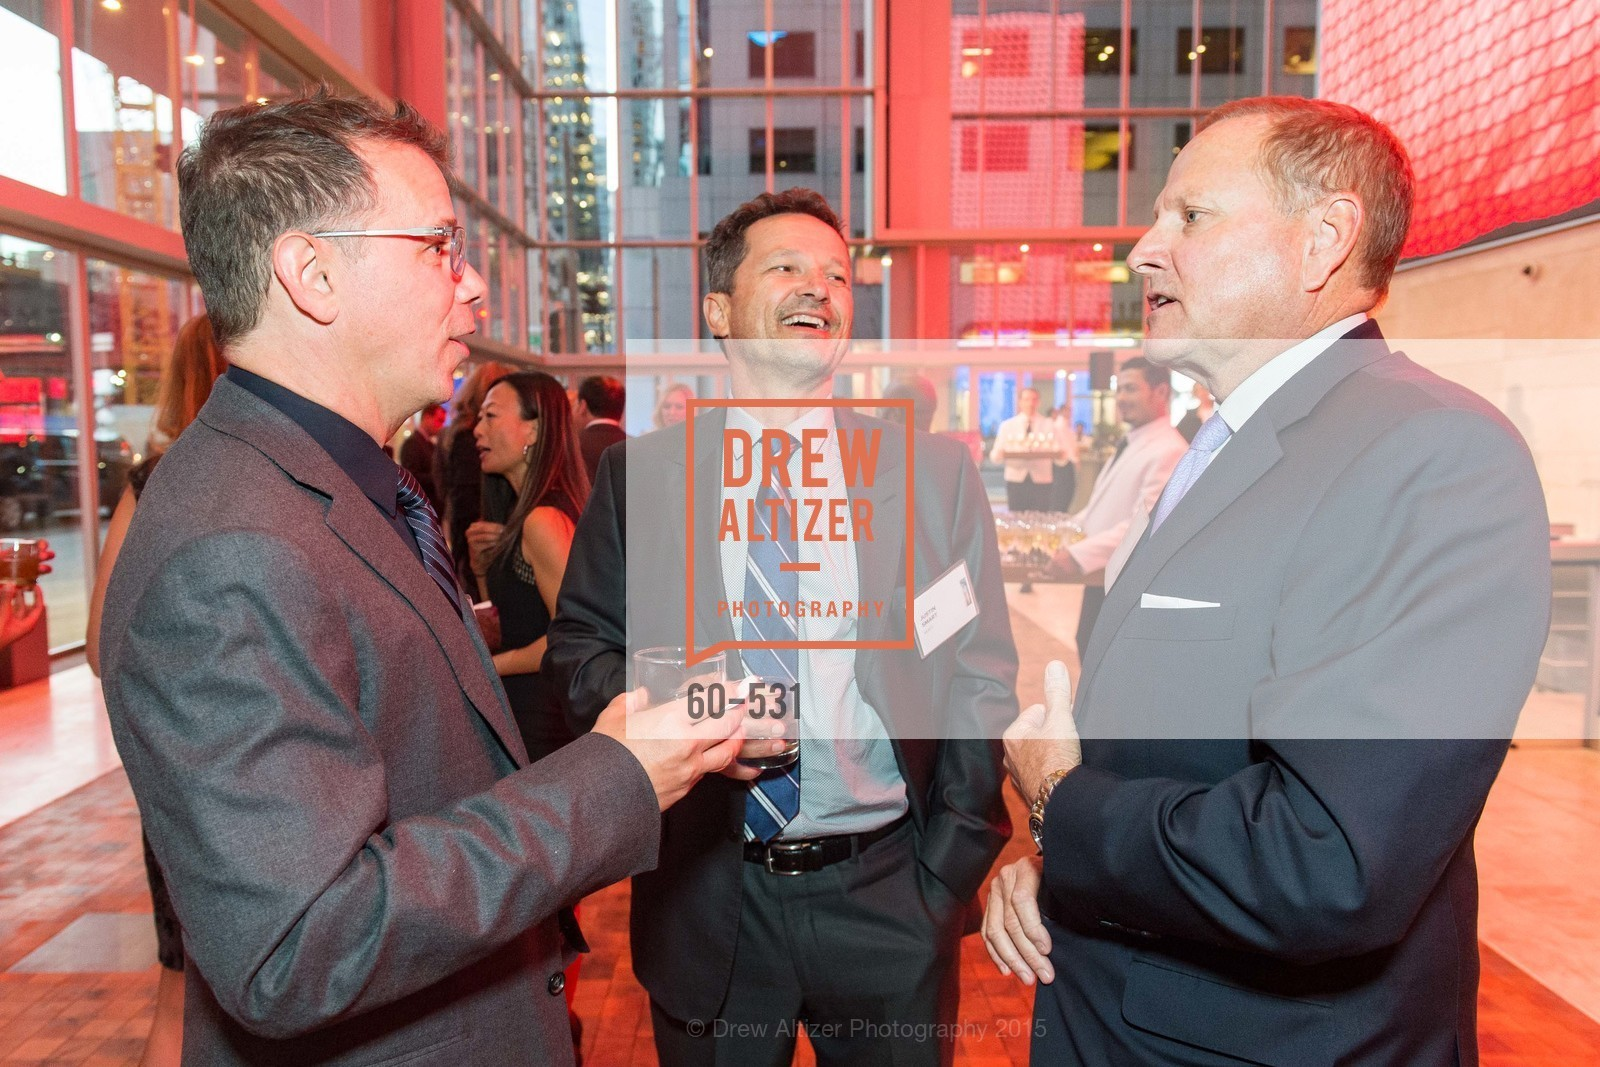 Douglas Giesey, Justin Smart, Rob Paratte, Kilroy Unveiling Presents Virtual Depictions: San Francisco by Refik Anadol, 350 Mission Street. 350 Mission Street, November 16th, 2015,Drew Altizer, Drew Altizer Photography, full-service agency, private events, San Francisco photographer, photographer california